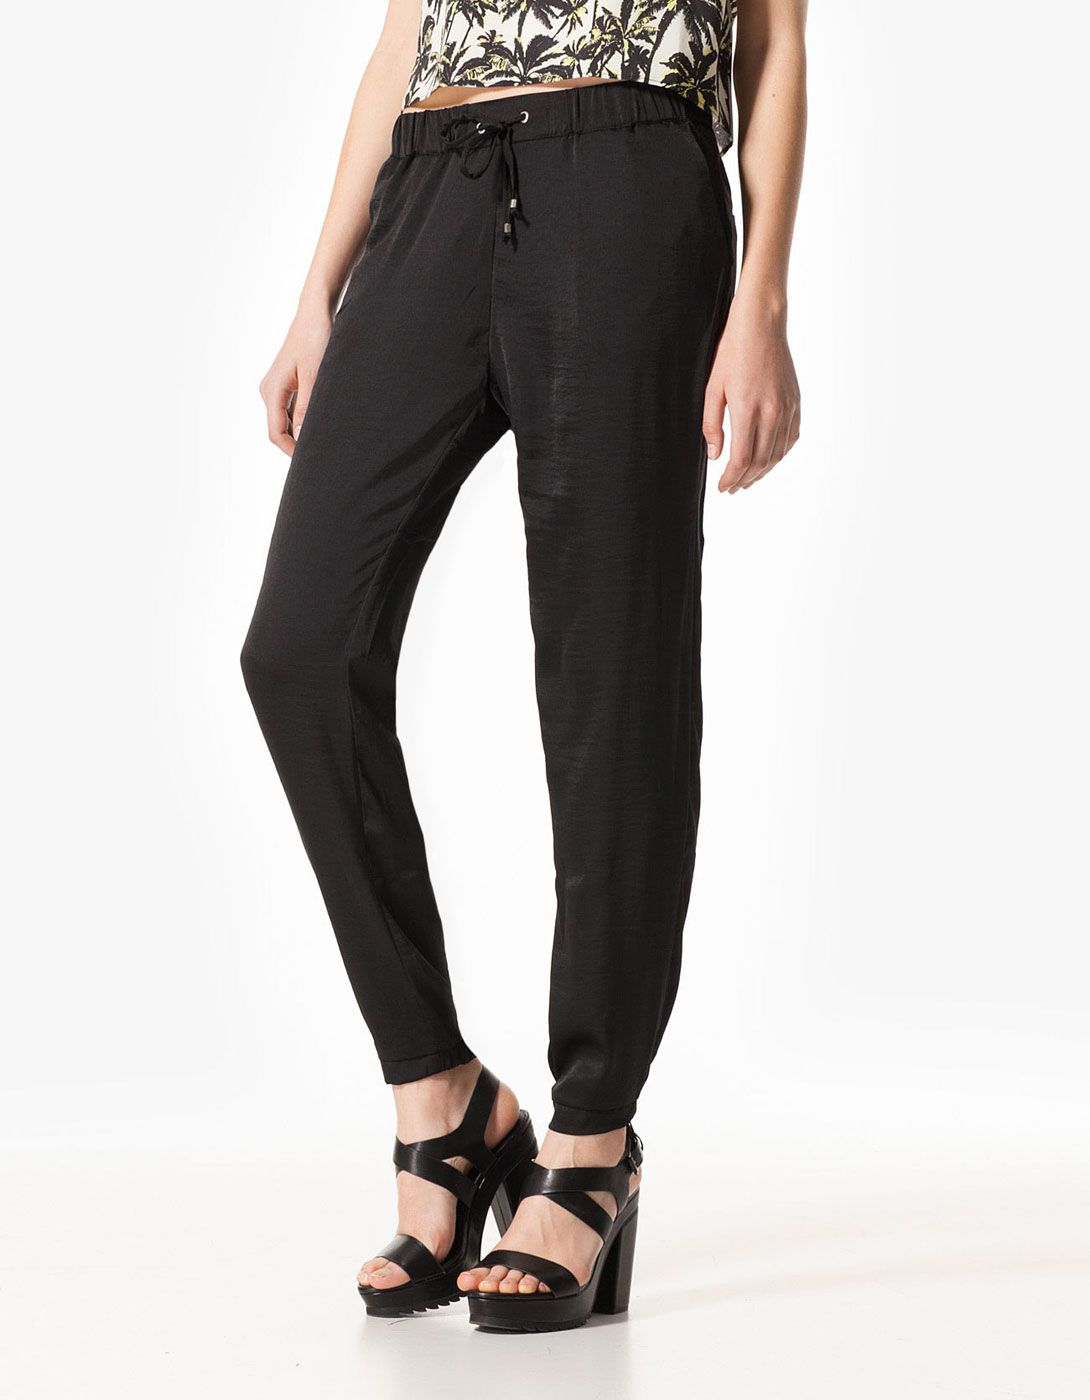 Baggy pants with zip detail